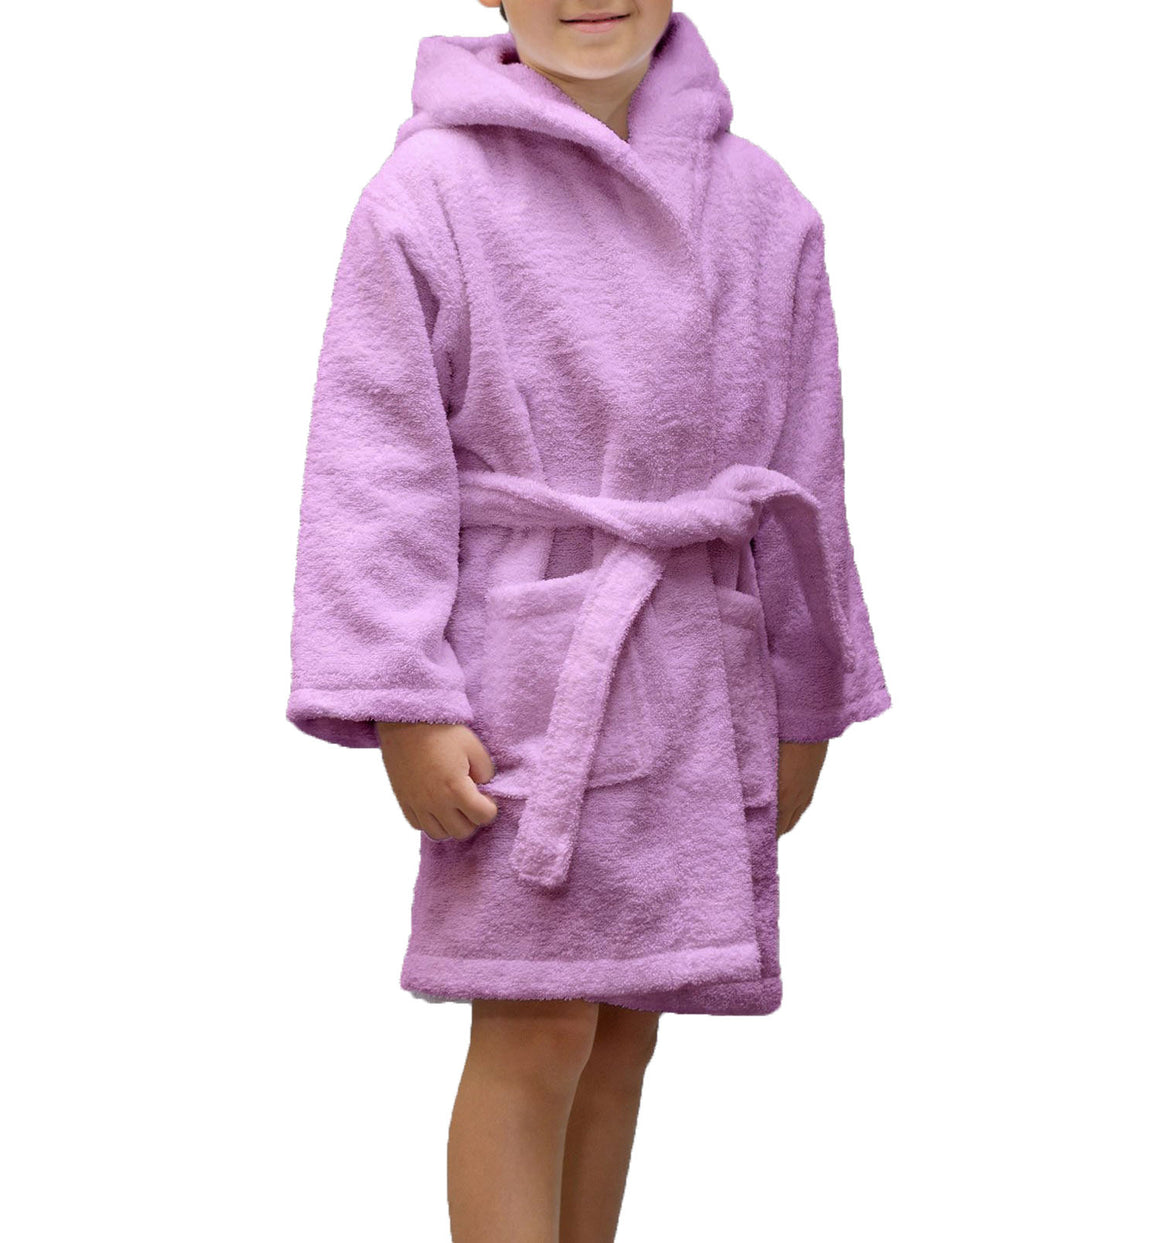 100% Turkish Cotton Hooded Terry Kid's Bathrobe